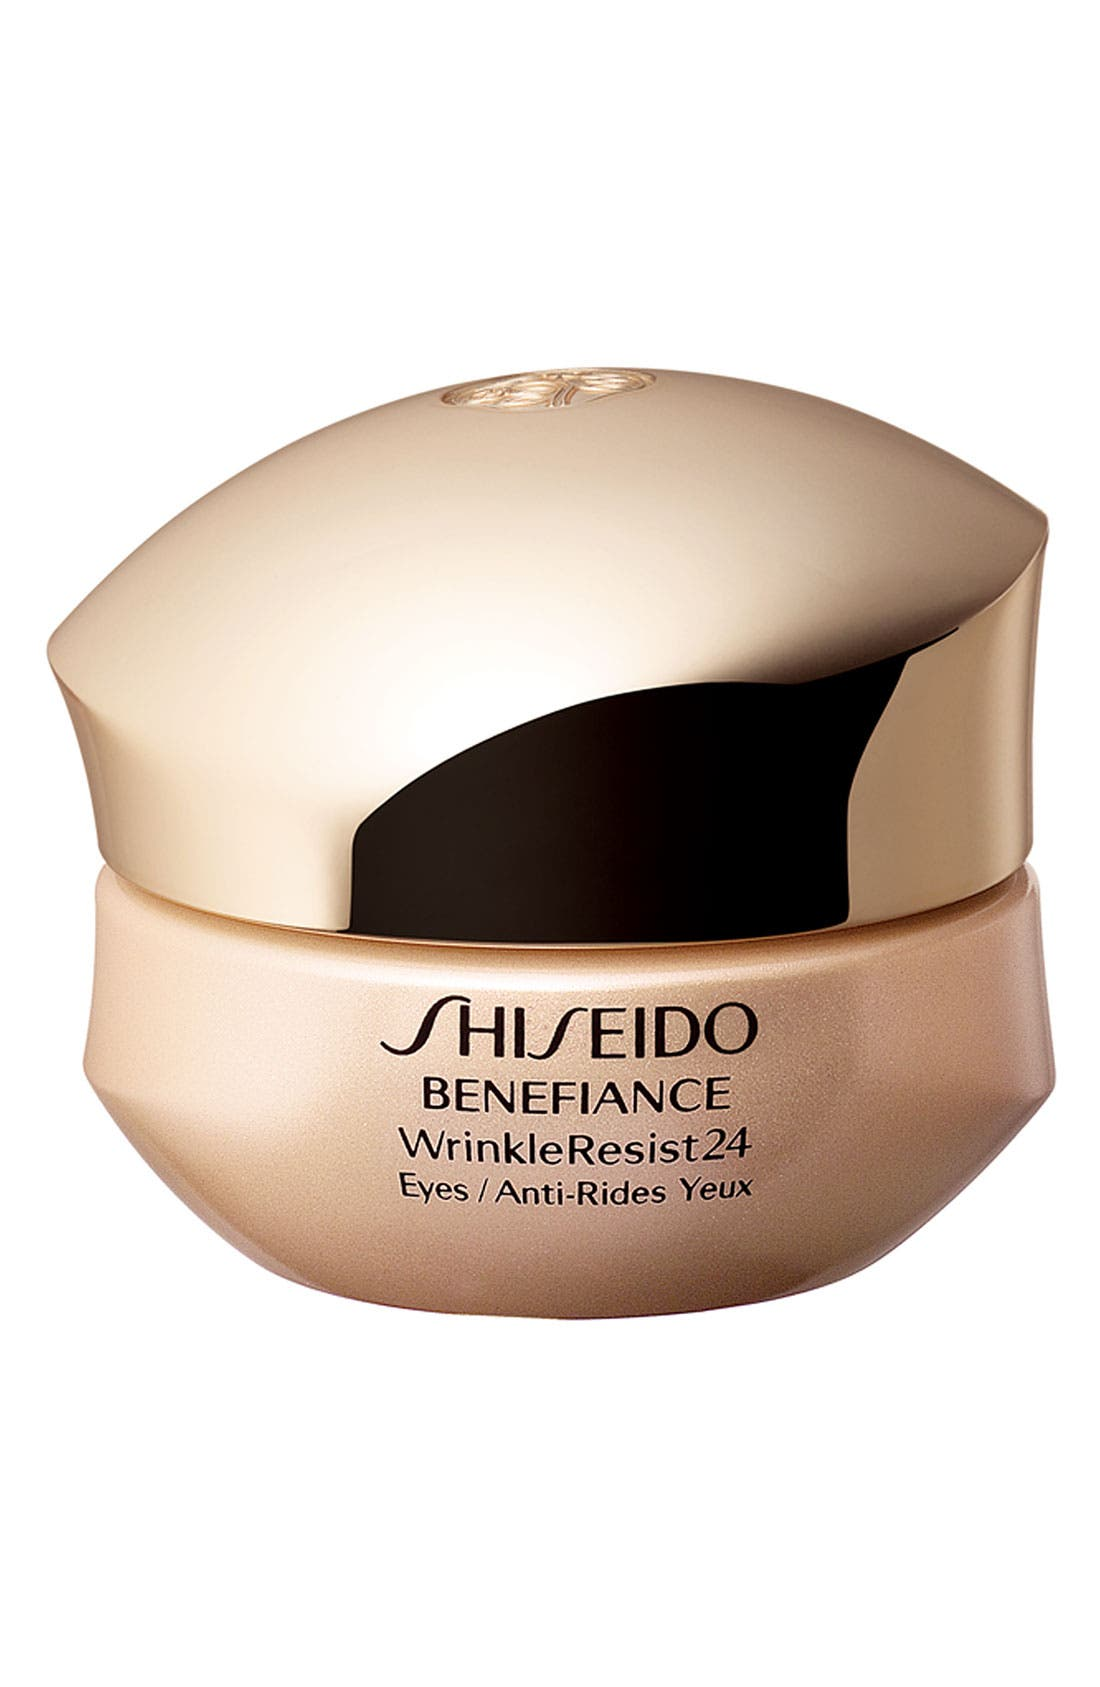 Shiseido Benefiance WrinkleResist24 Intensive Eye Cream